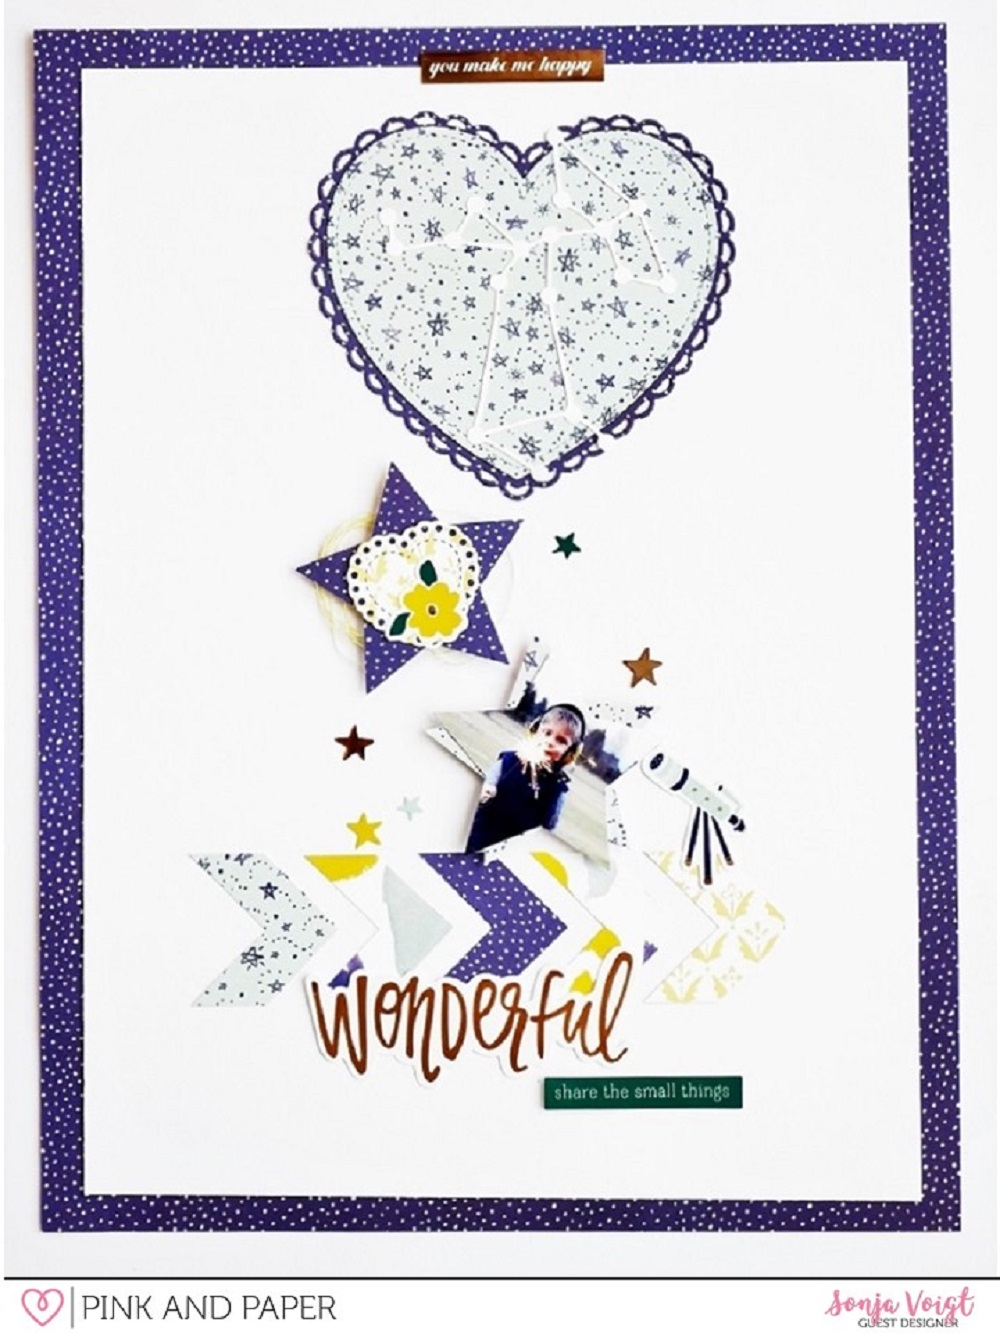 Sonja Voigt_Stargazer_Layout_Full